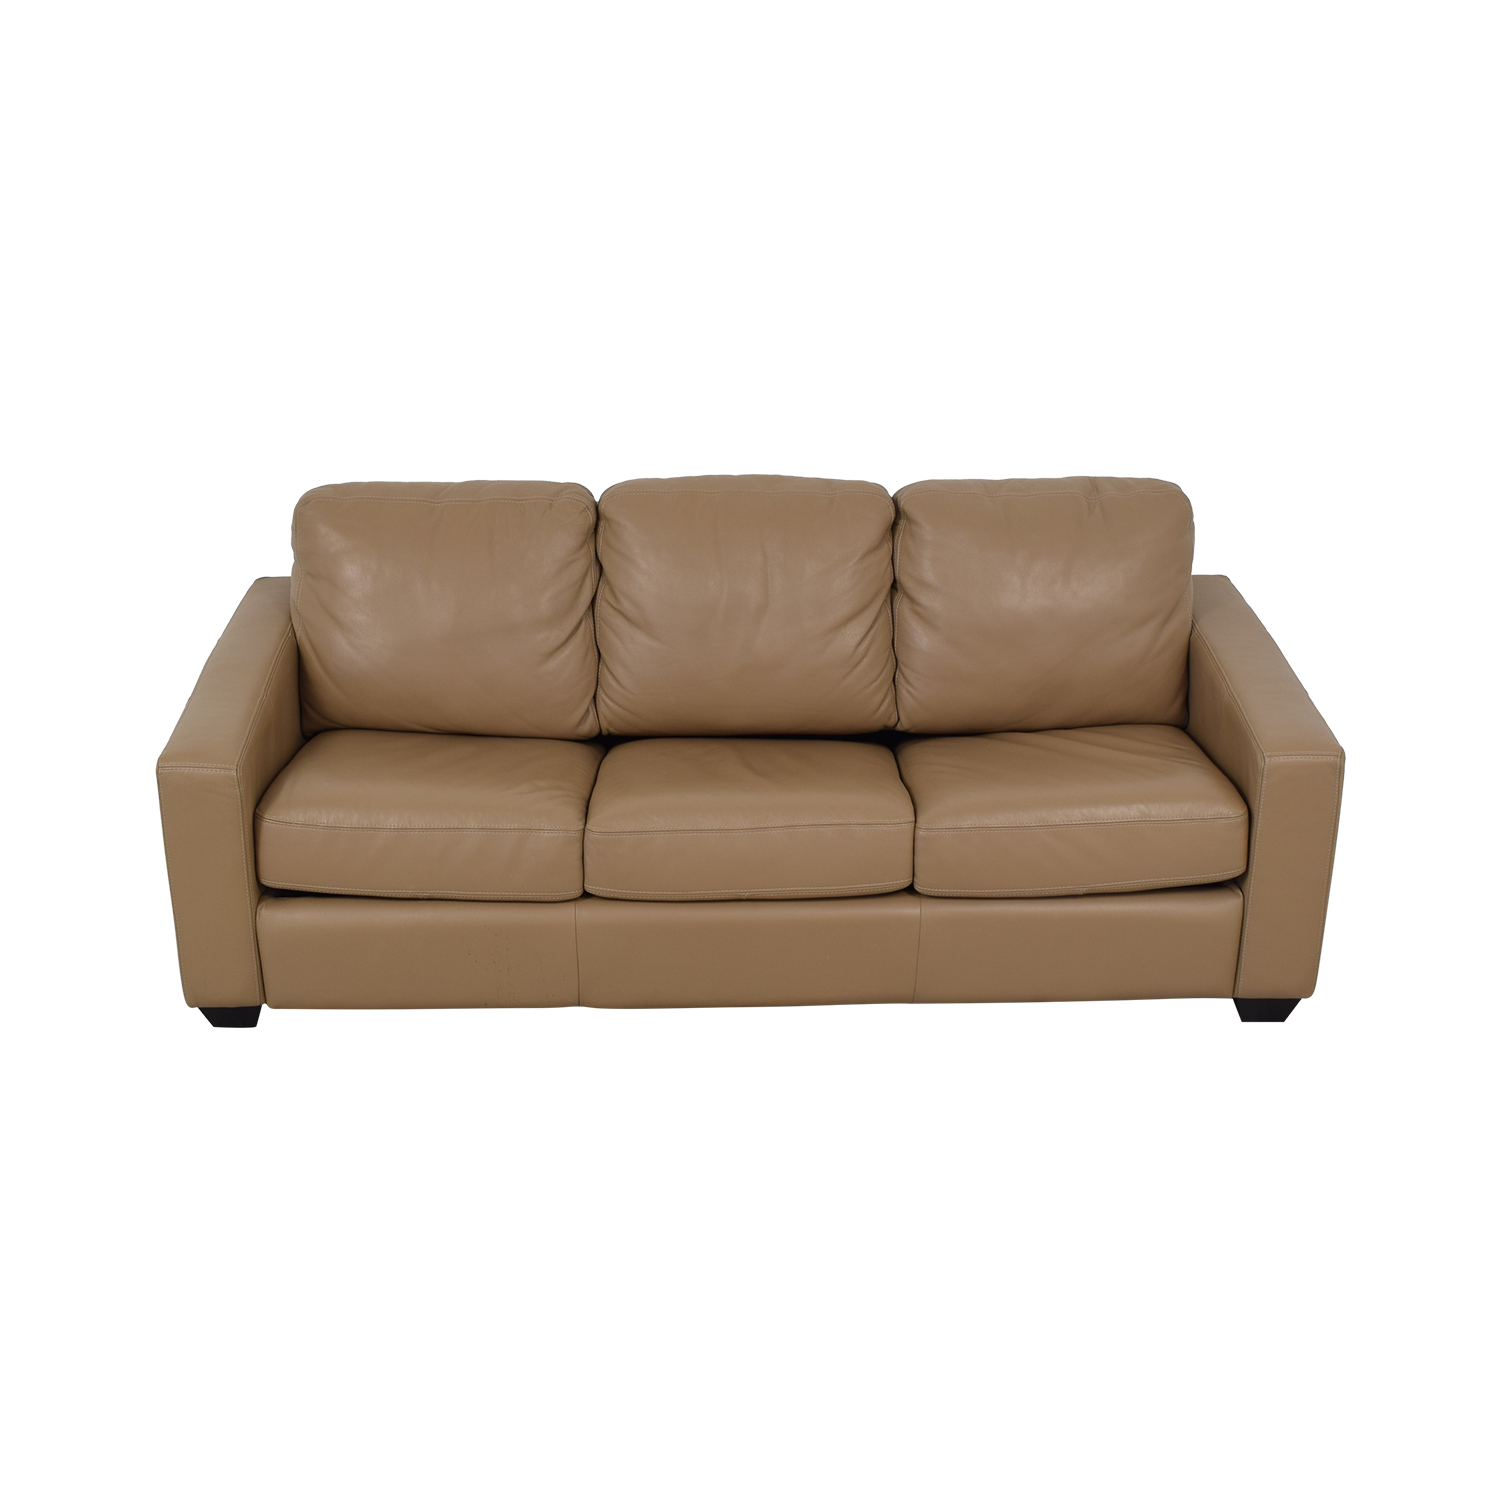 JC Penney Leather Sleeper Sofa sale